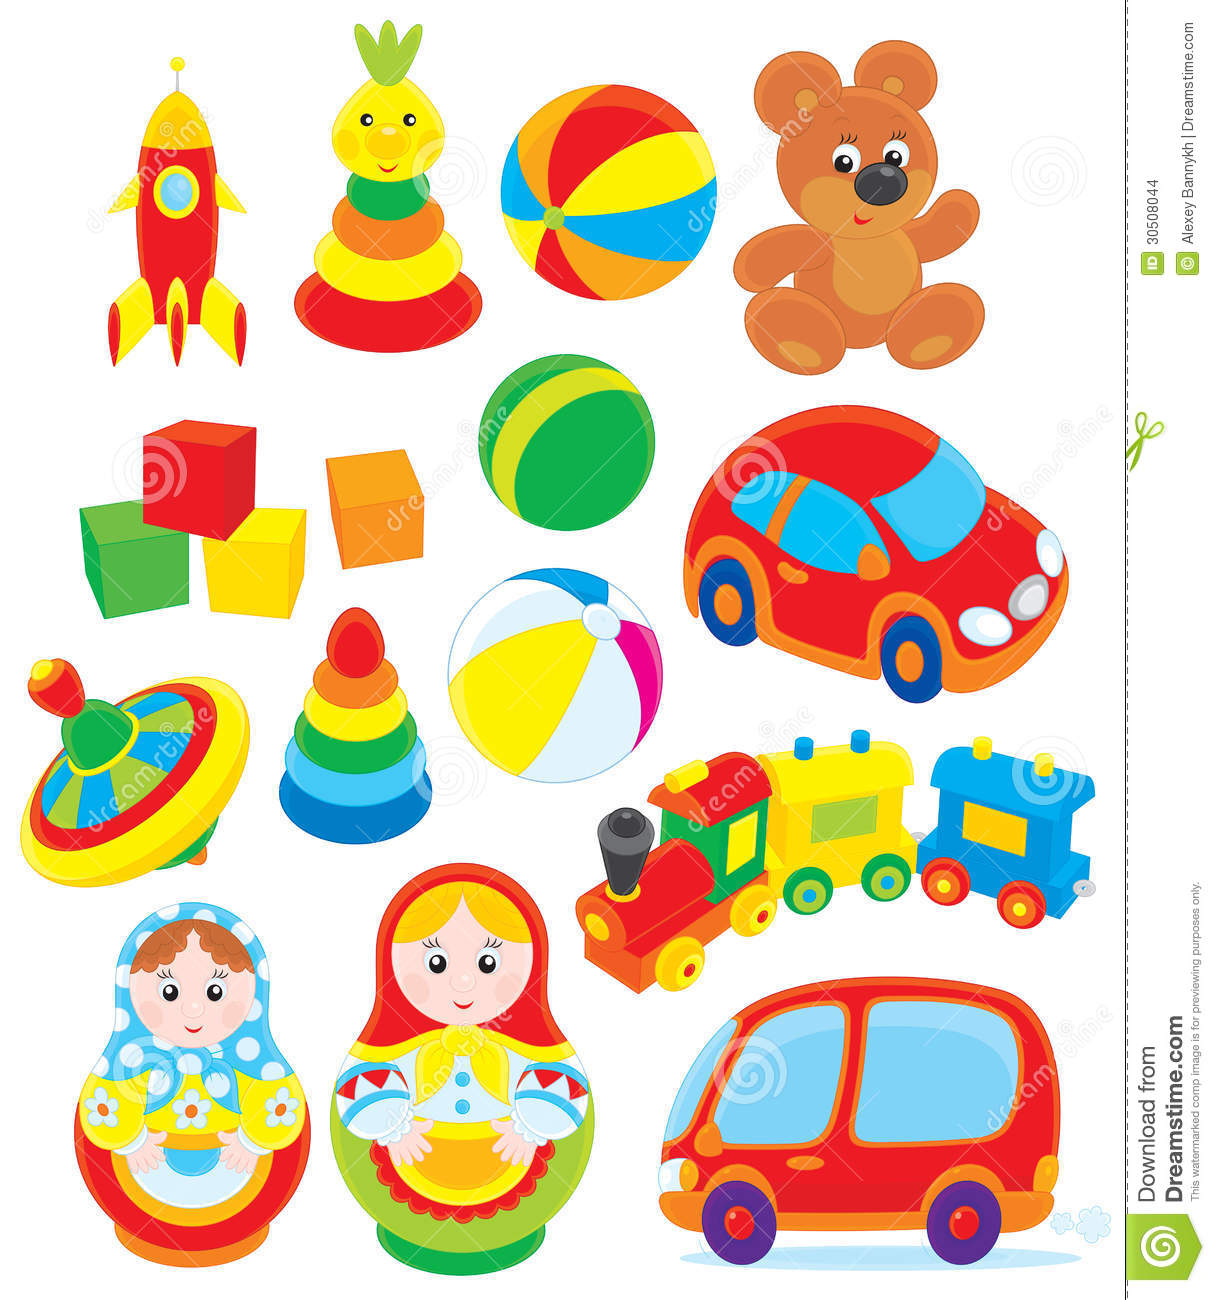 Bilder clipart png freeuse library Clipart Toys & Toys Clip Art Images - ClipartALL.com png freeuse library